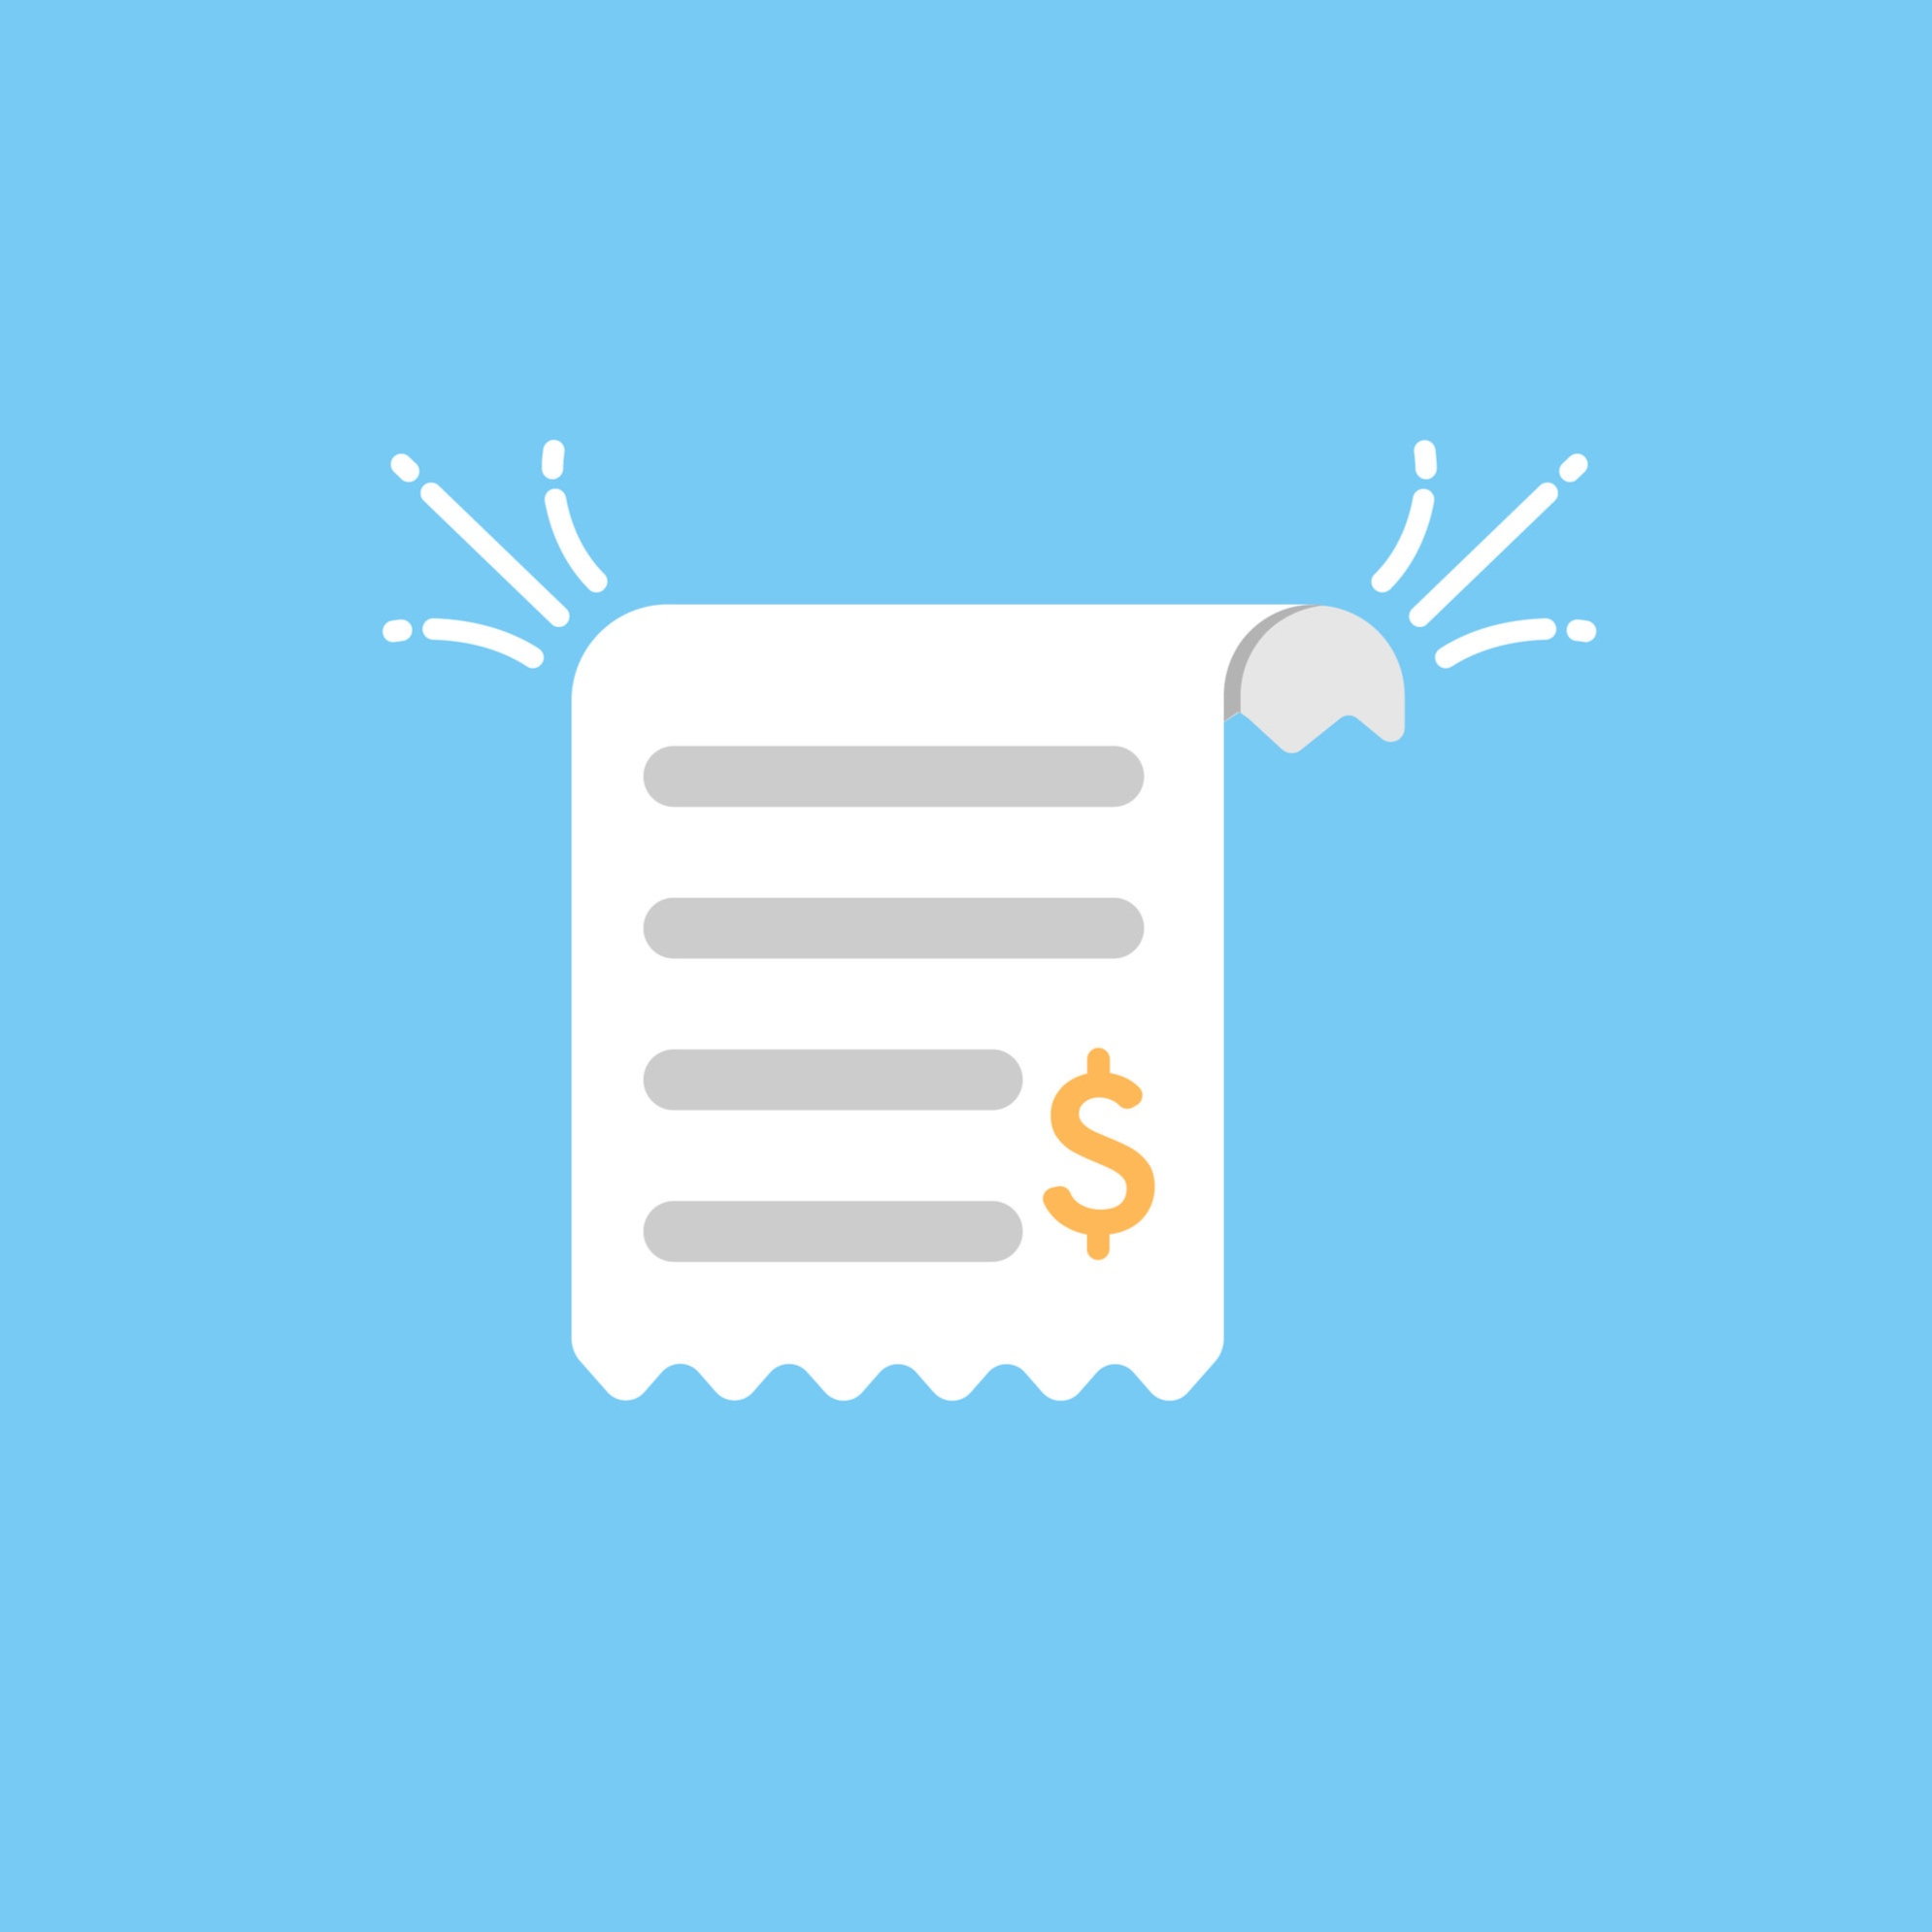 Create Invoice - Create invoices for completed tasks on collaborations you have done between other members.